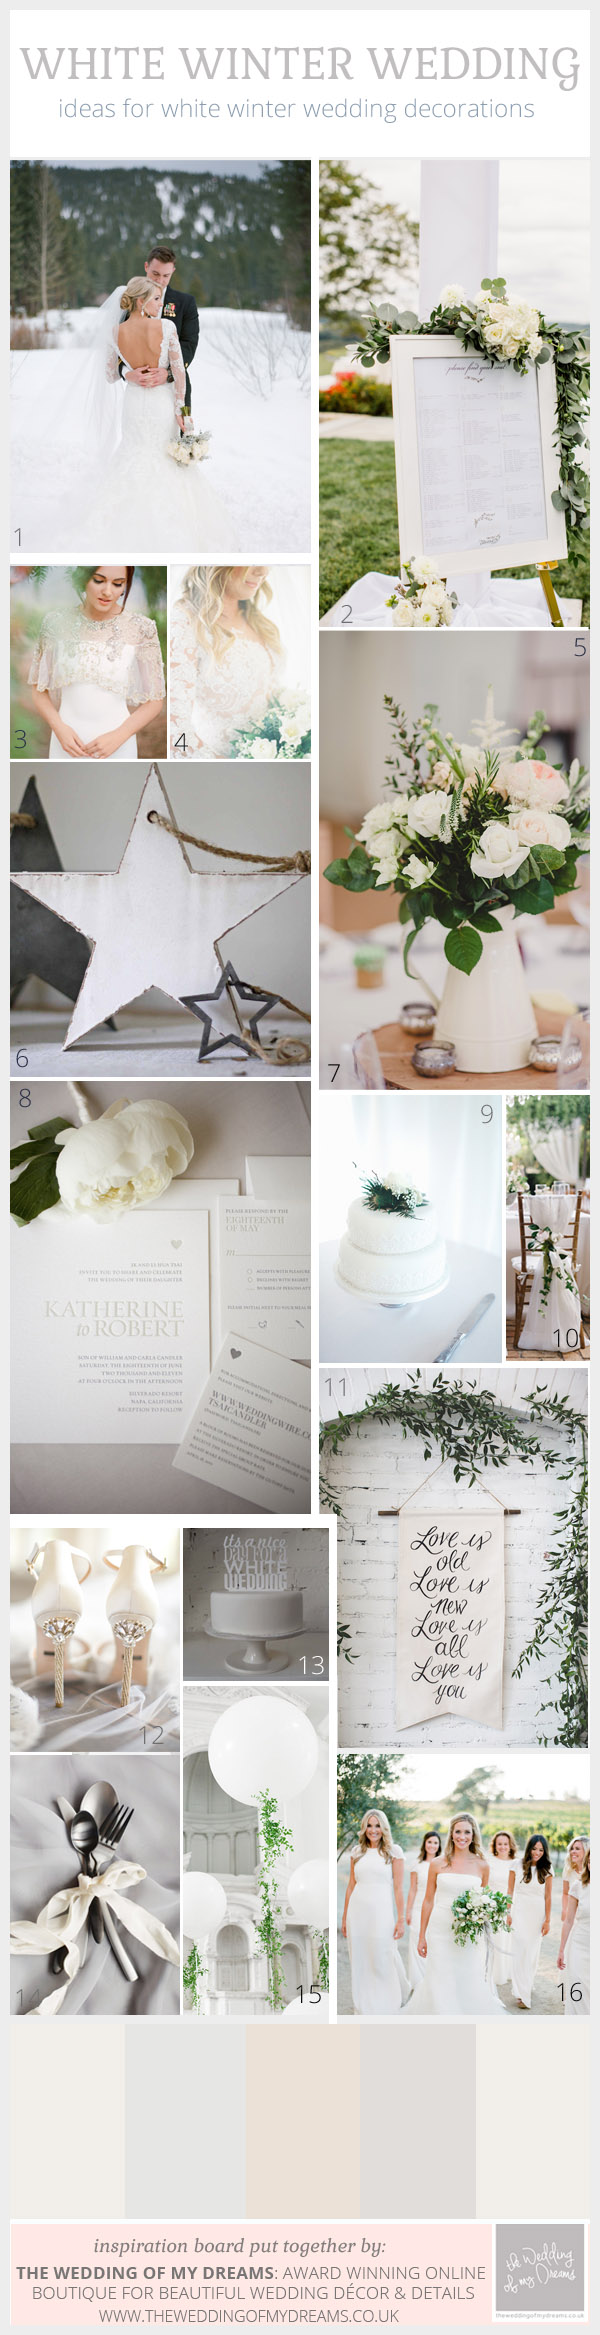 white winter wedding wedding decorations and ideas